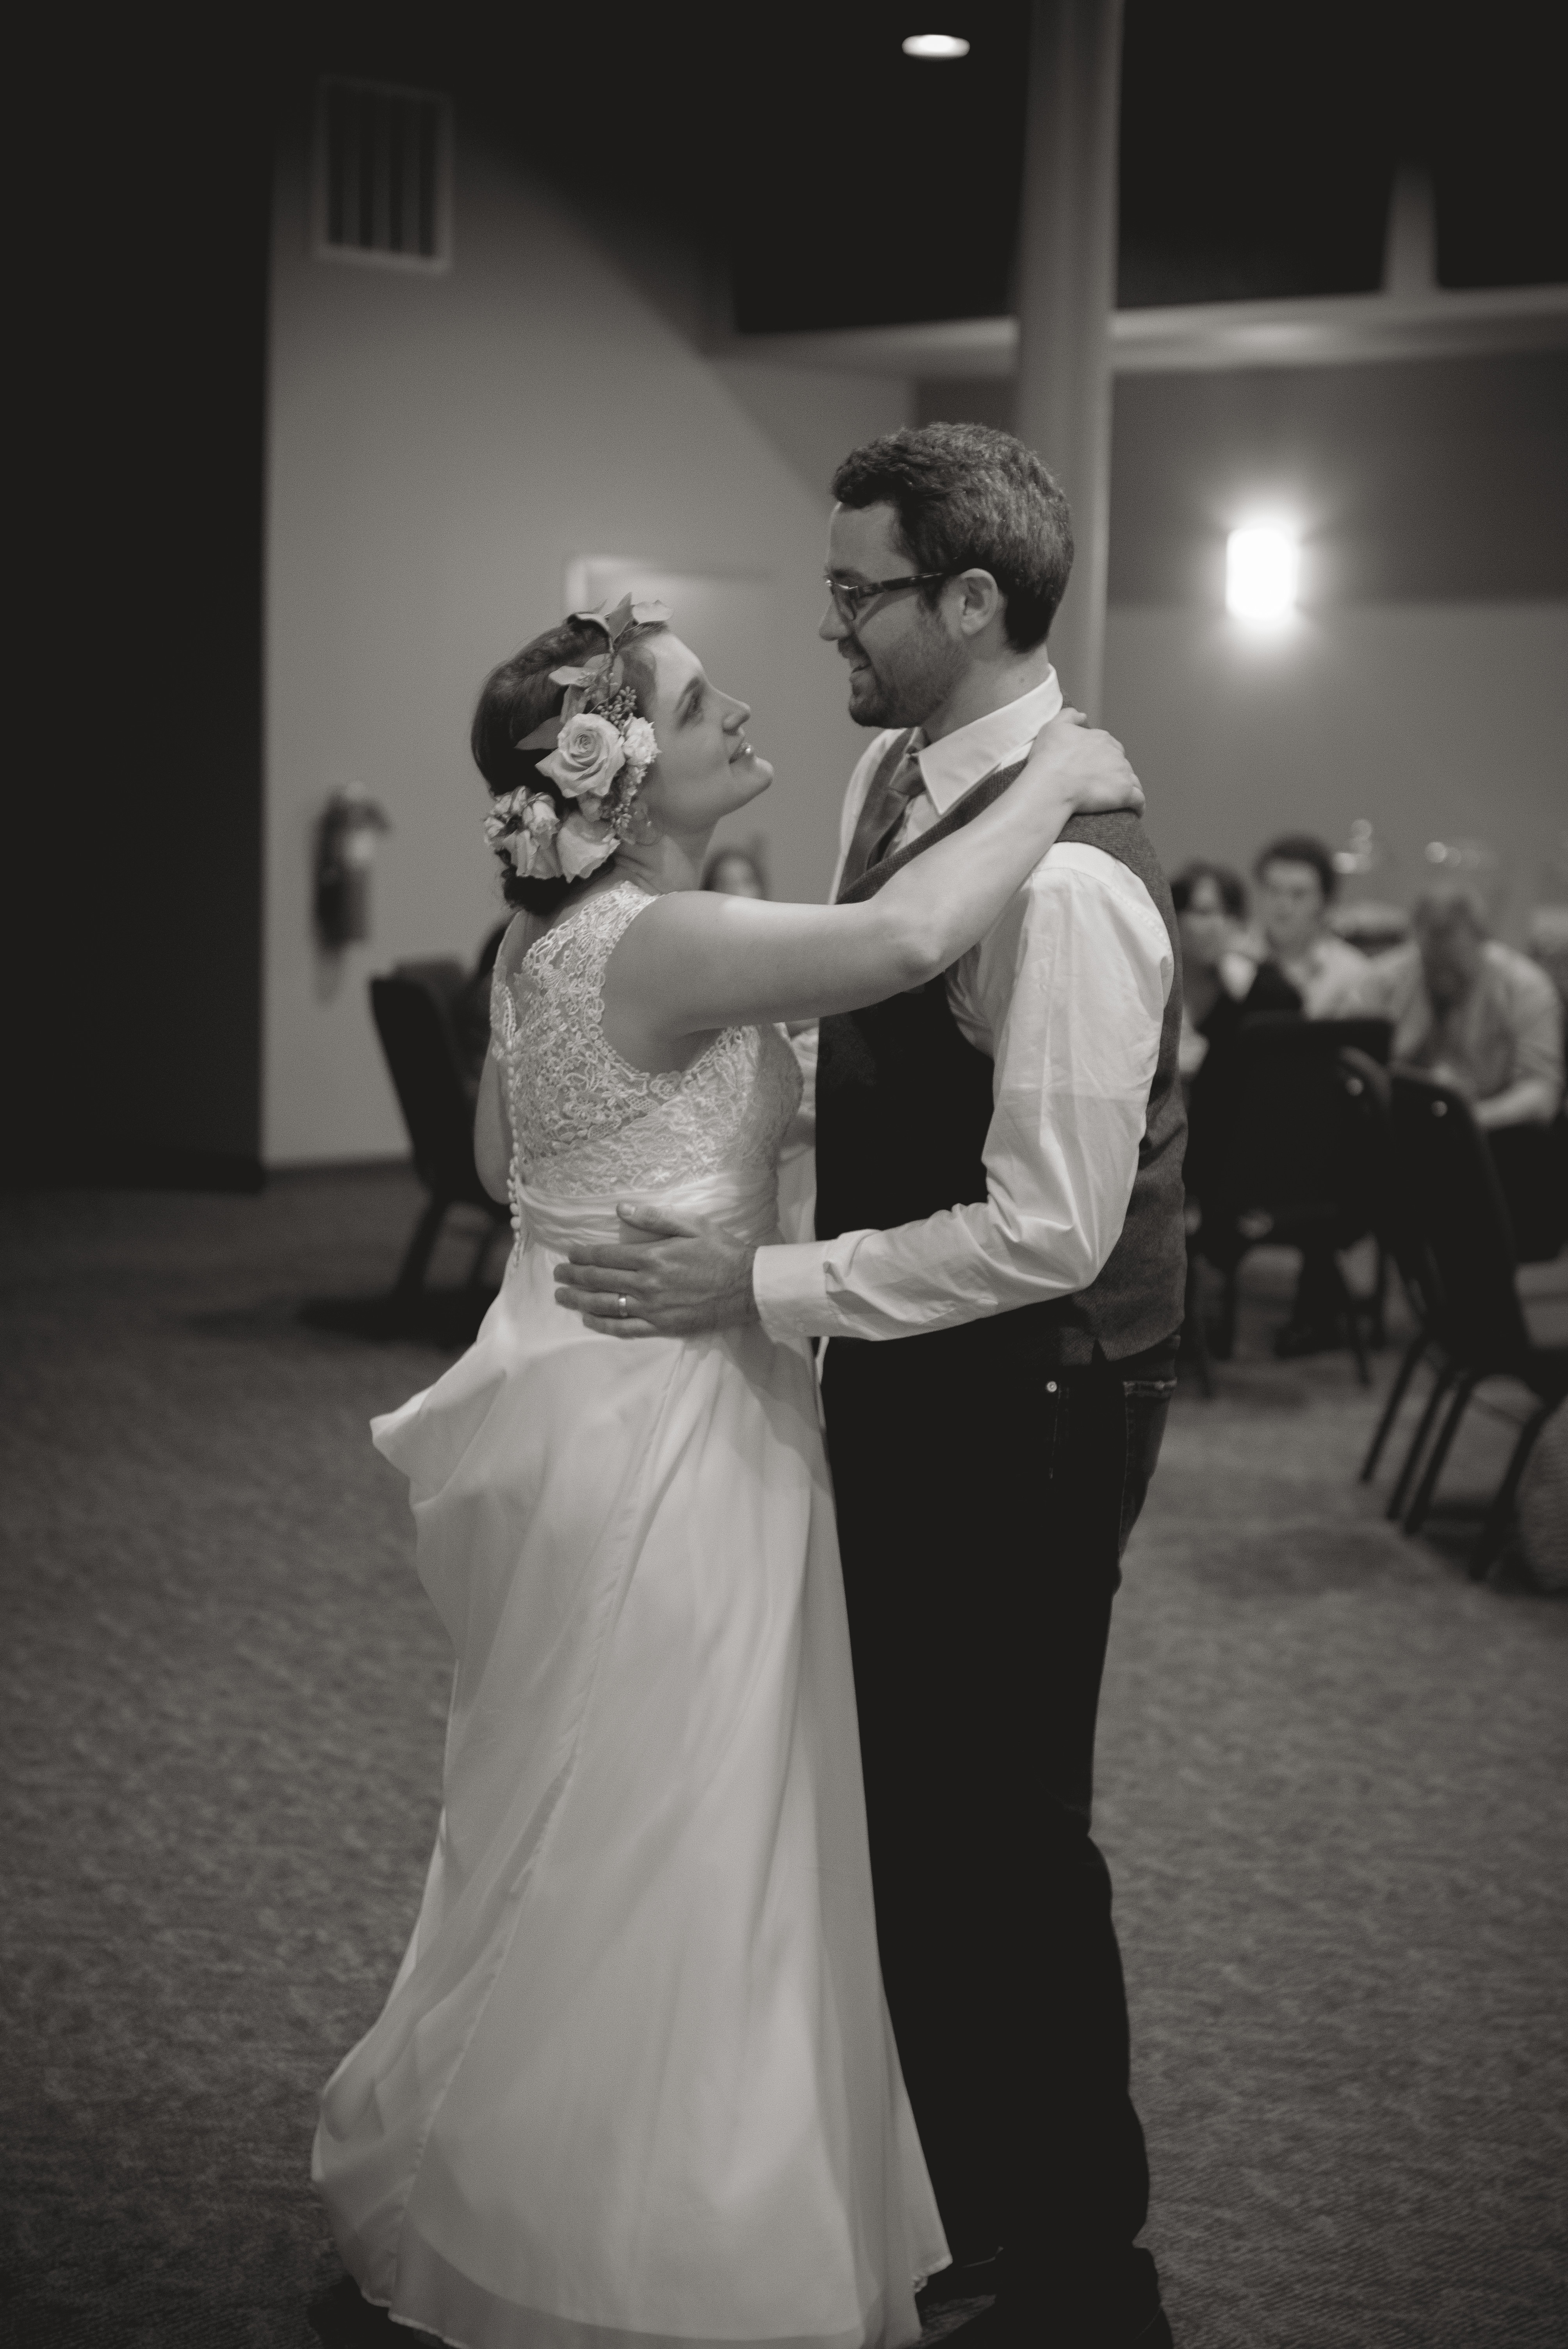 Marriage_Photography__Bride_Groom_wedding_Athens_Ohio_OH_lifestyle_documentary_Cherry_trees_spring_university_college_town_Brookfield_Church